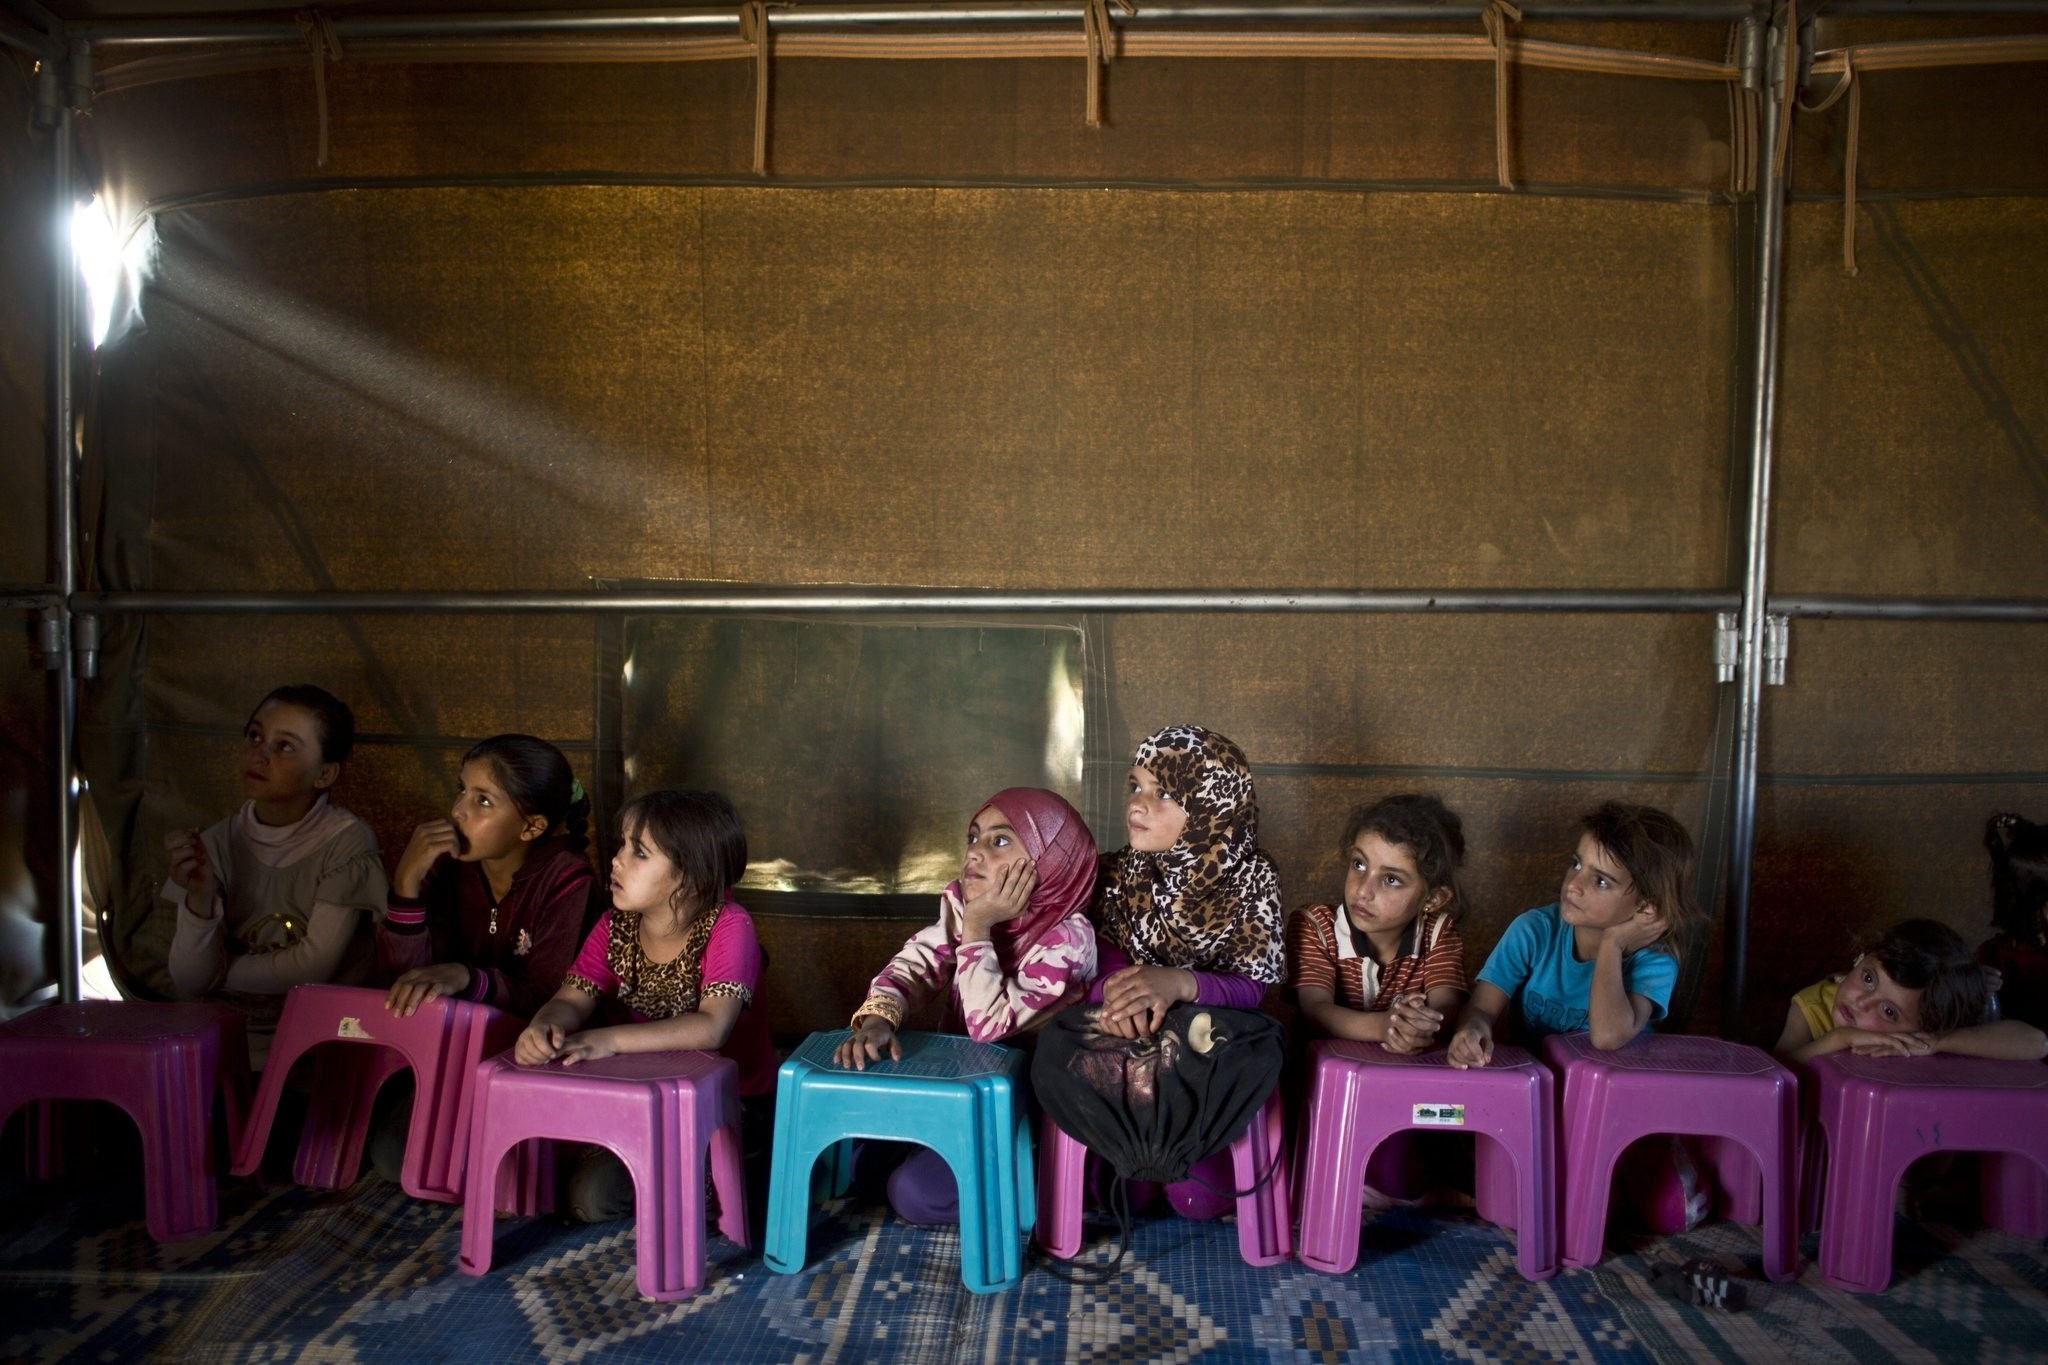 Syrian refugee children attending a class at a makeshift school set up in a tent at an informal tented settlement near the Syrian border on the outskirts of Mafraq, Jordan, Oct. 21, 2015. (AP Photo)